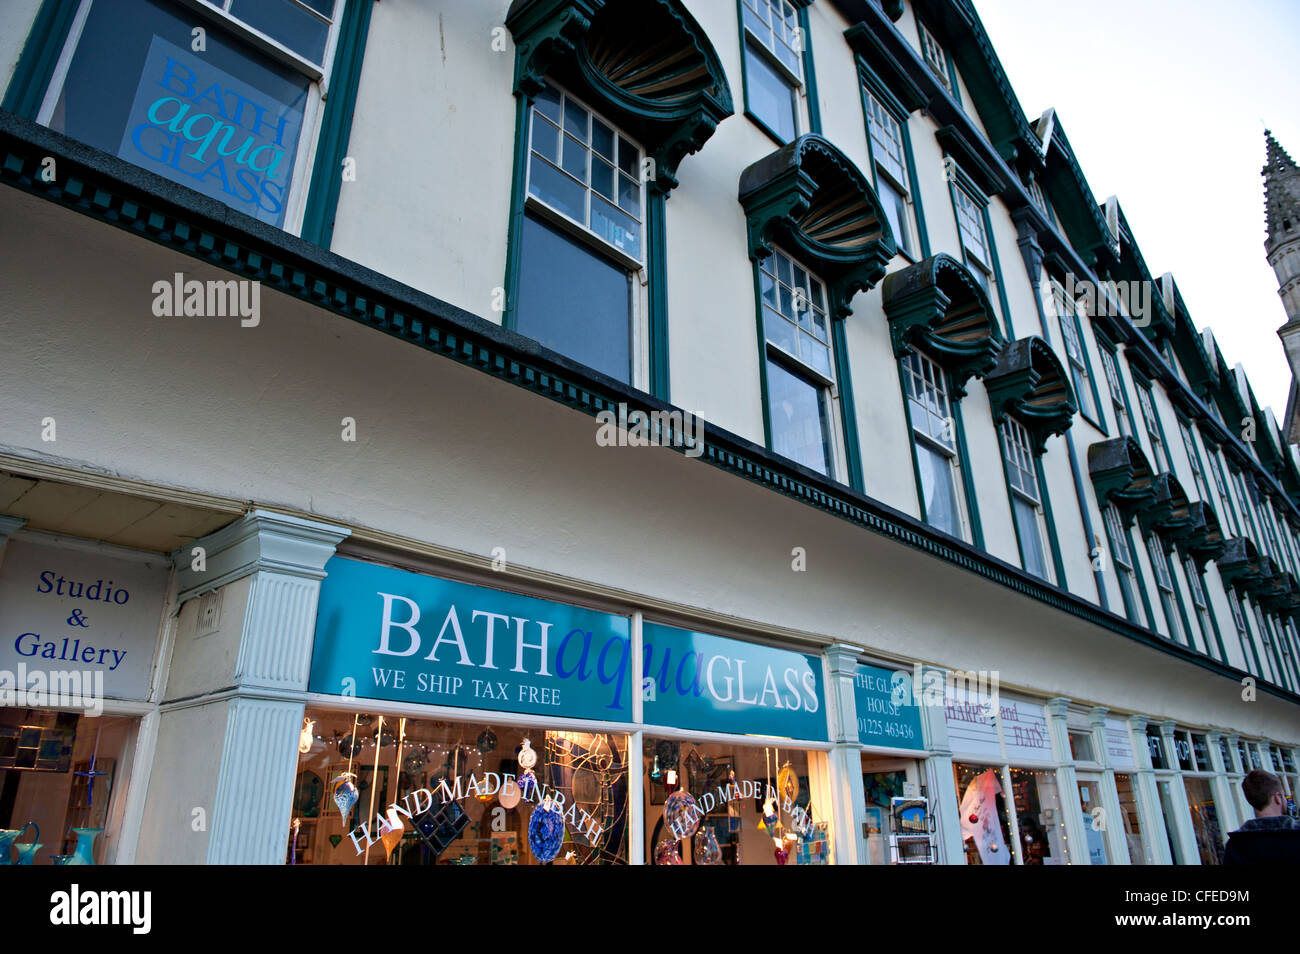 Shopfronts and residential buildings in Bath, UK - Stock Image